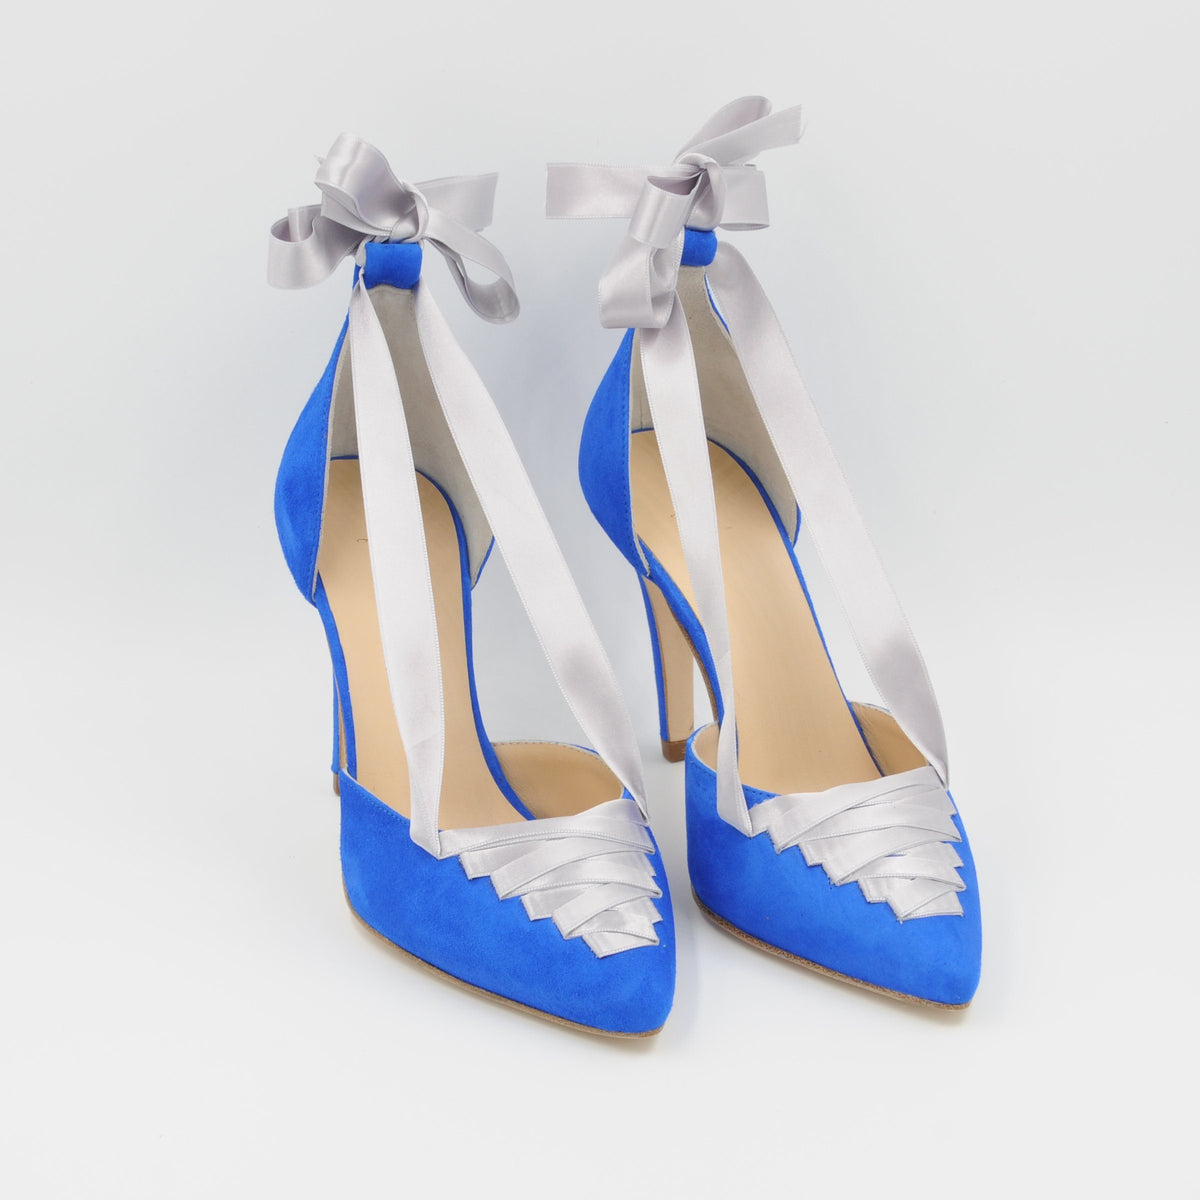 Lola Domecq Sophie In Blue Handmade suede lace-up heels